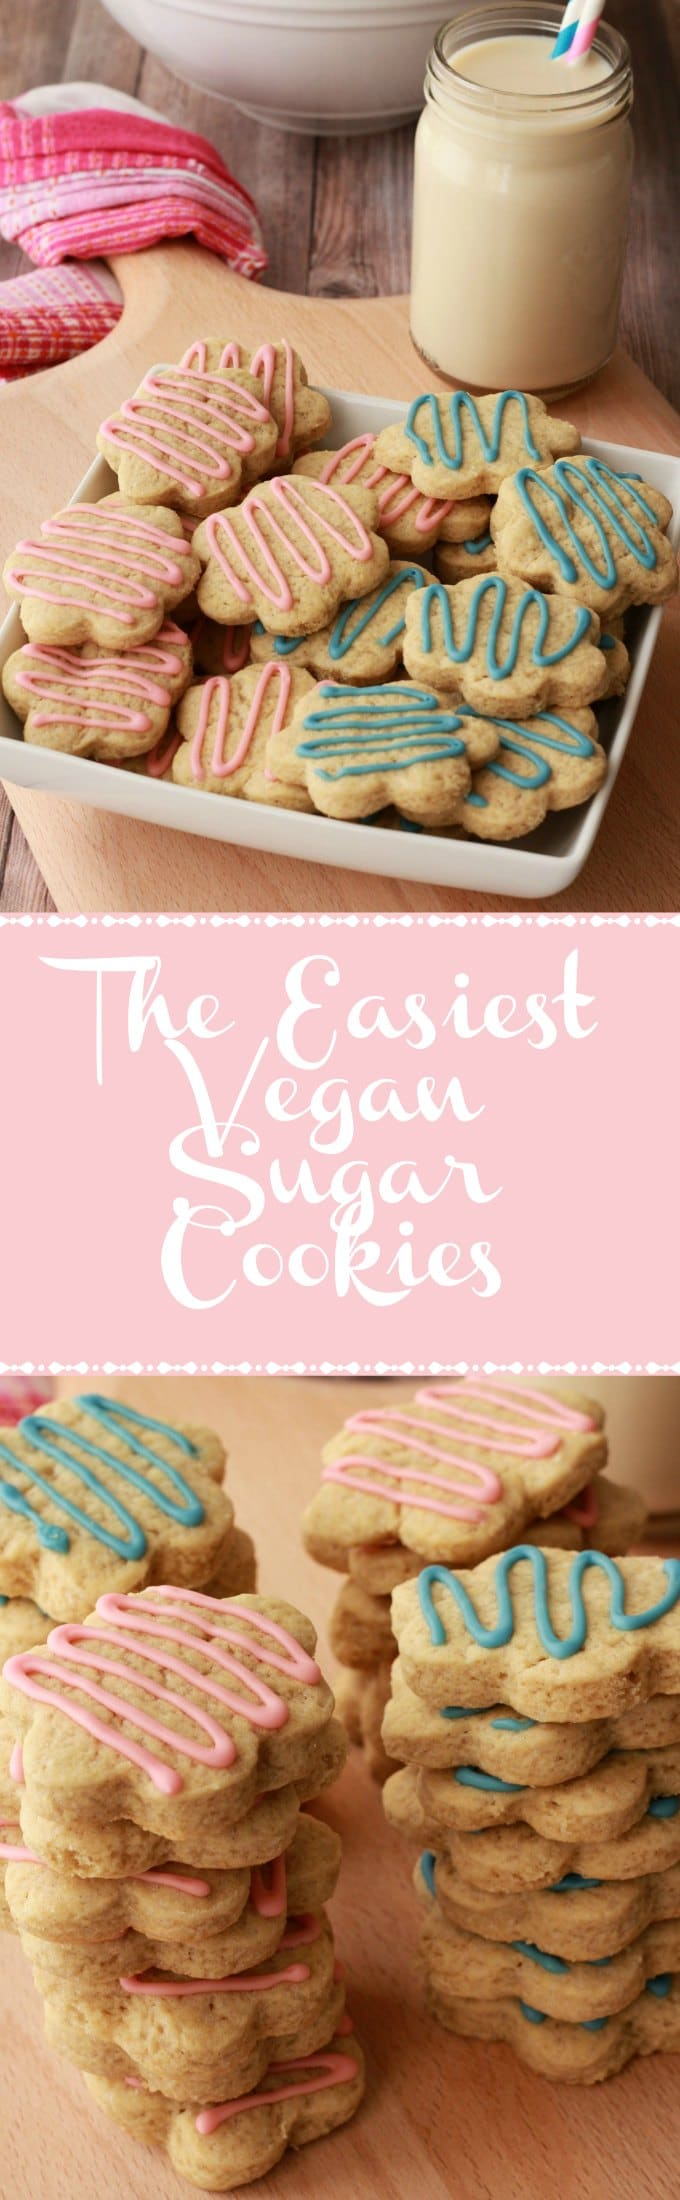 Colorful and fun vegan sugar cookies. These soft and chewy sugar cookies are super easy to make and perfect for any occasion. vegan | vegan dessert | vegan cookies | vegan food | Vegan recipes | lovingitvegan.com